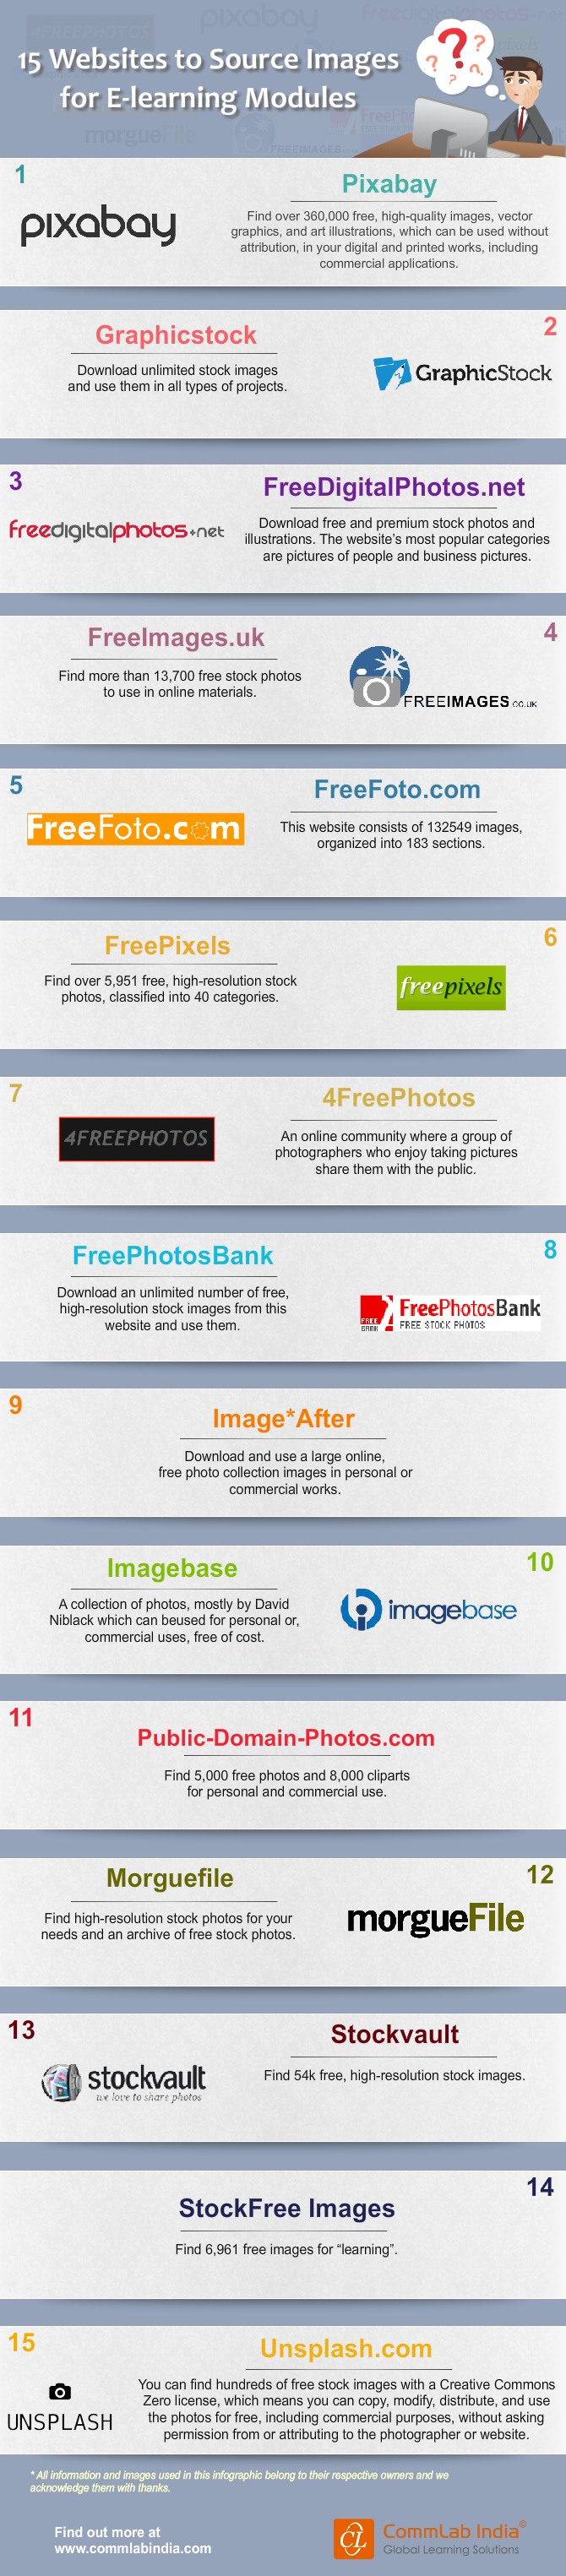 15 Websites to Source Images for E-learning Modules [Infographic]